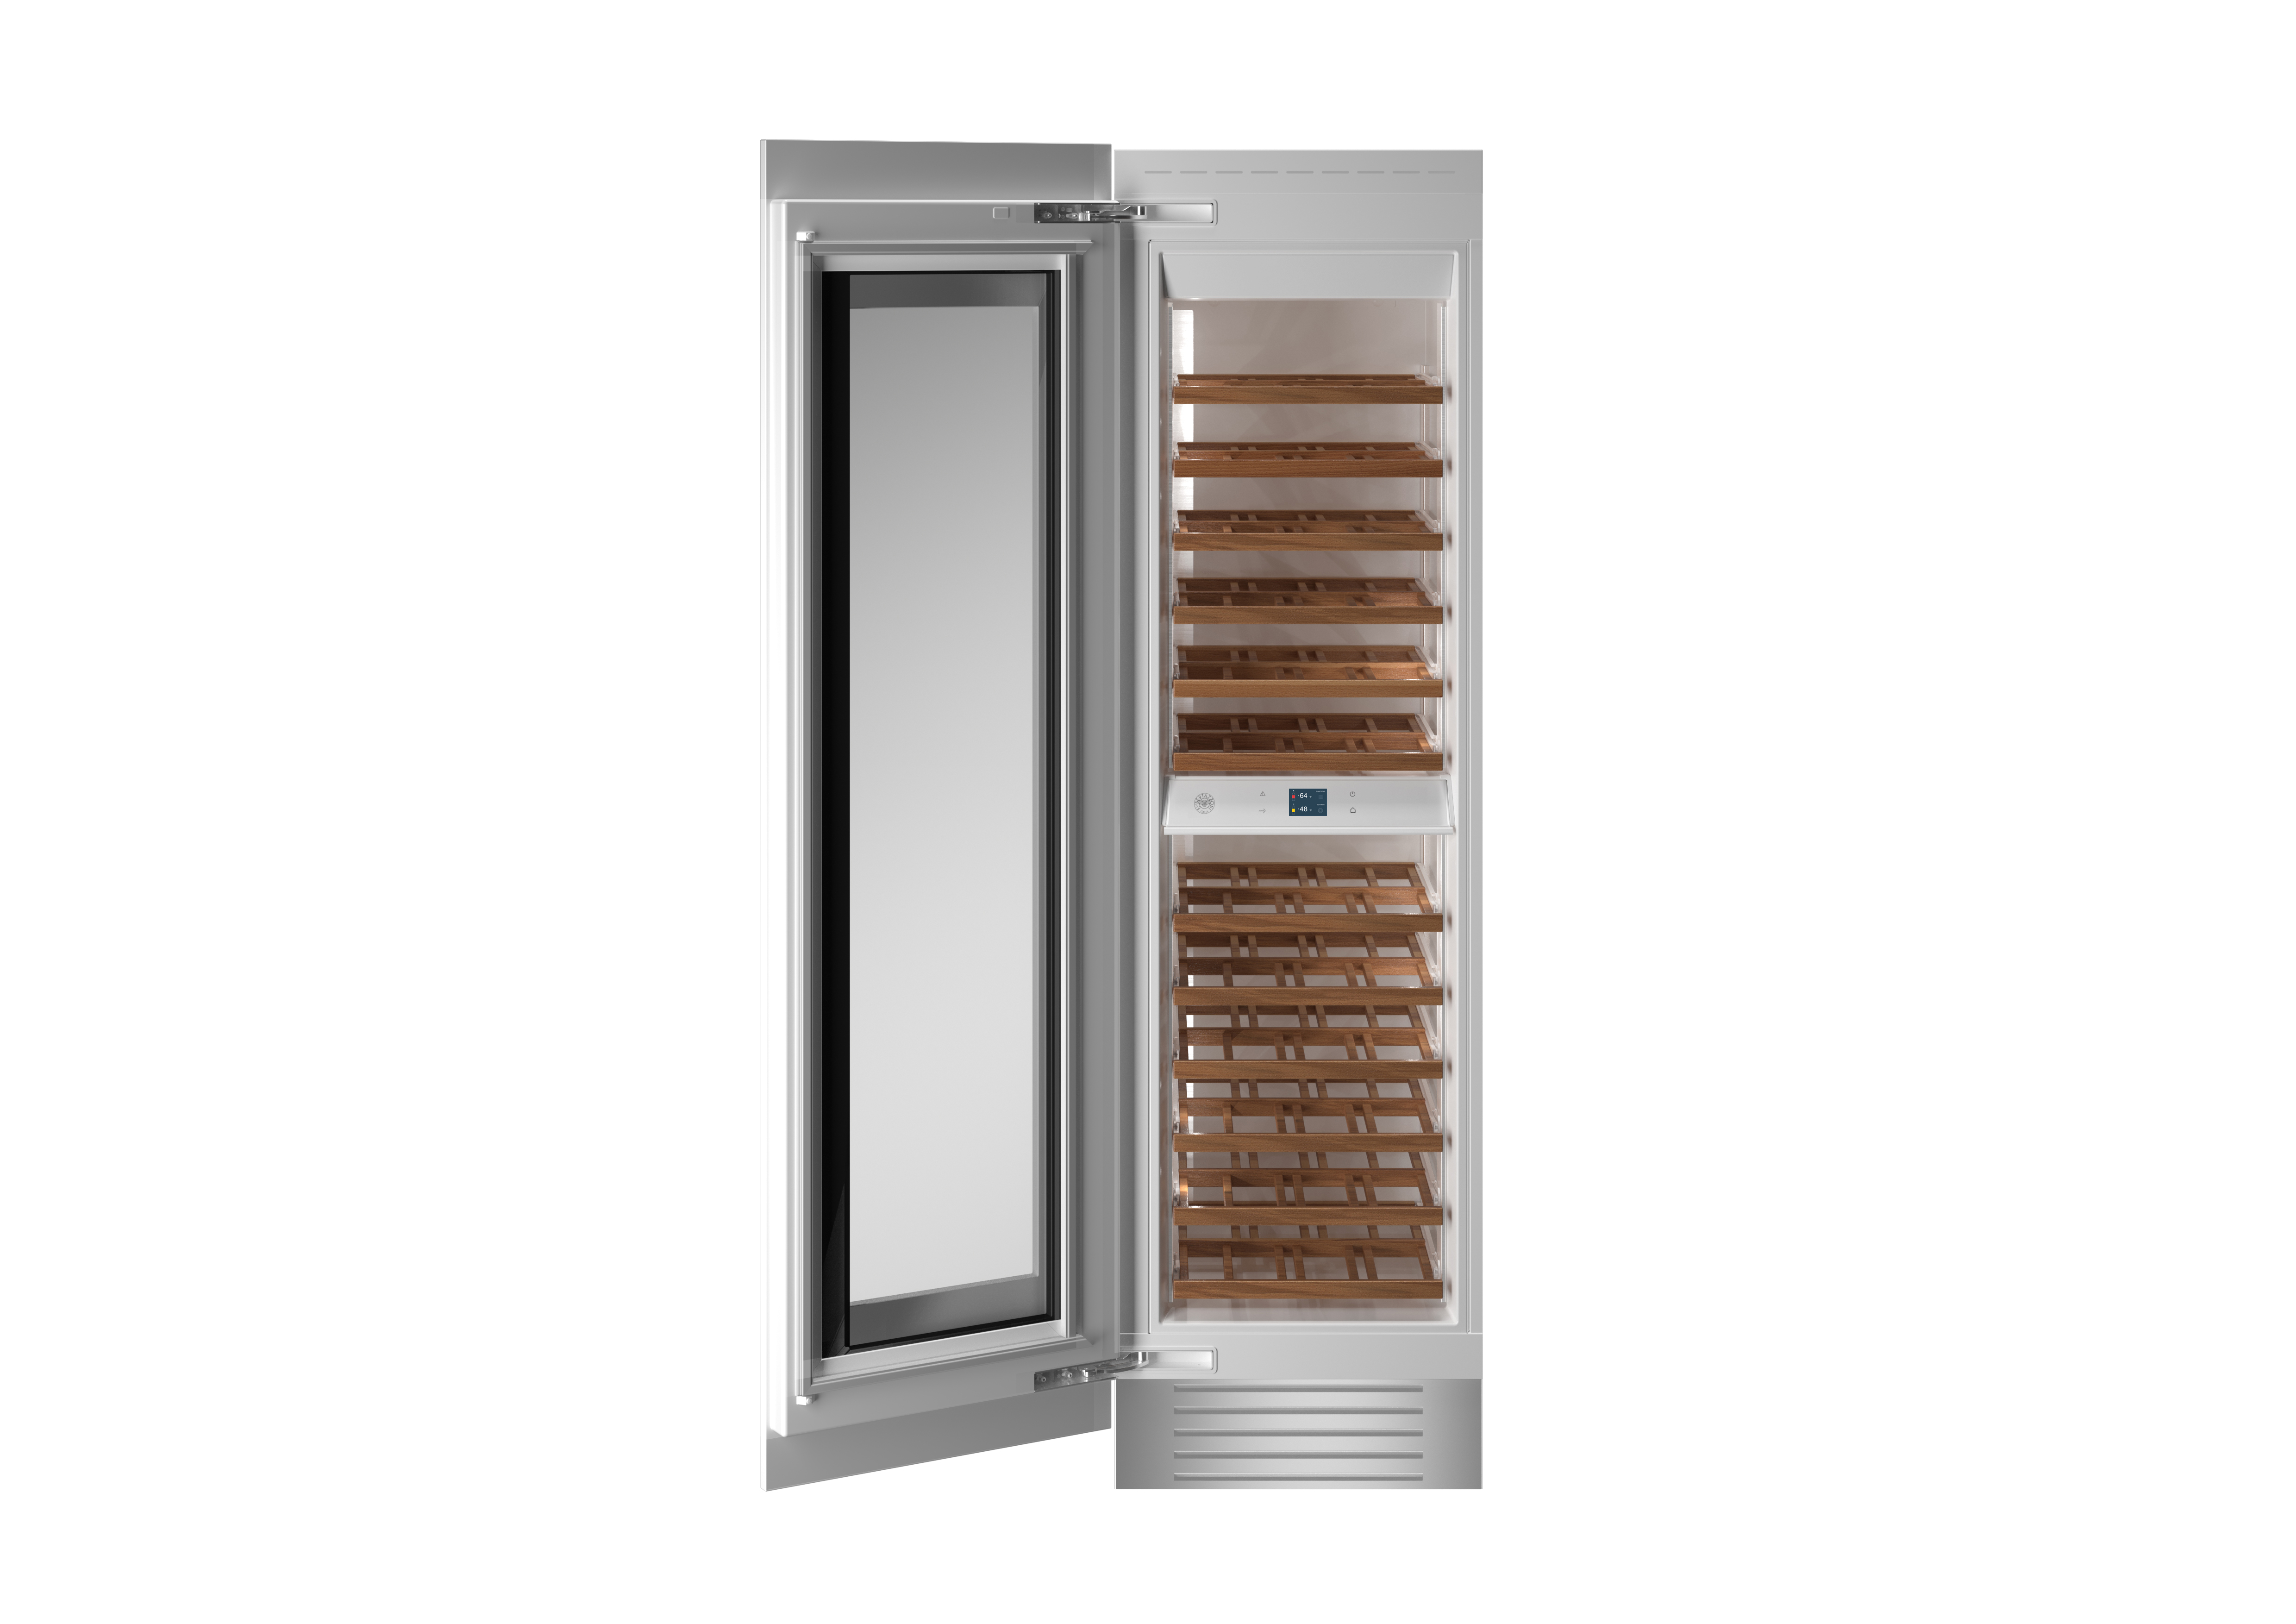 Bertazzoni Cellar REF24WCPRL in Pannel-Ready color showcased by Corbeil Electro Store